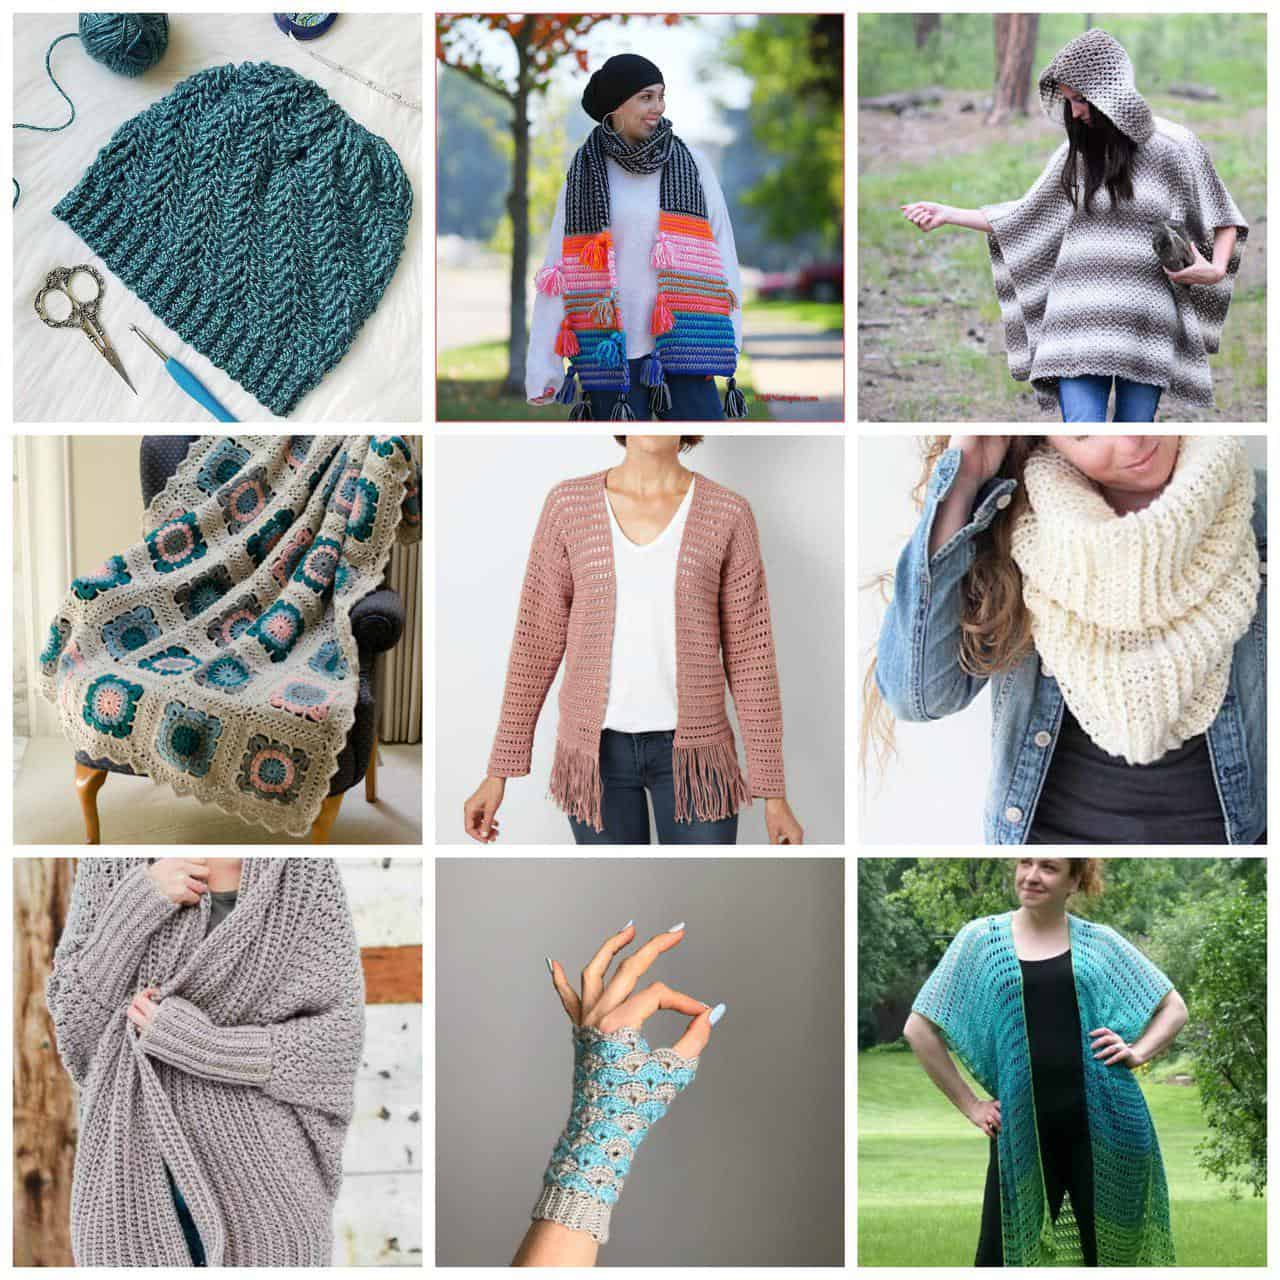 f675832caa Meet The Most Amazing Deal of the Year  All About Layers Bundle ...